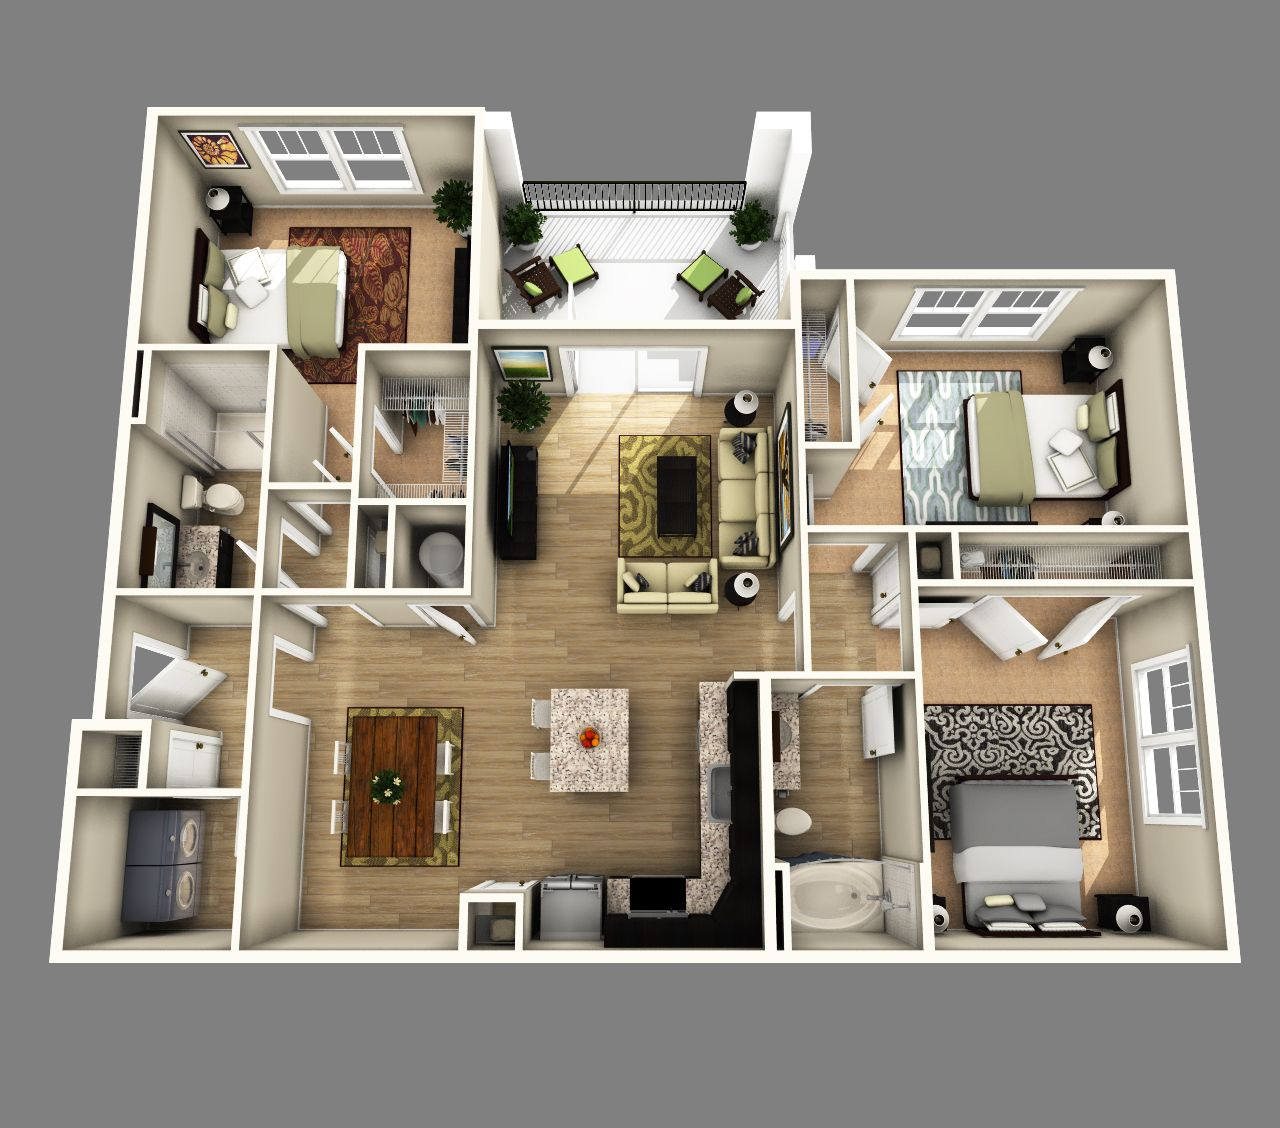 Perfect 3 Bedrooms Apartments   Http://www.designbvild.com/4350/3 Bedrooms  Apartments/